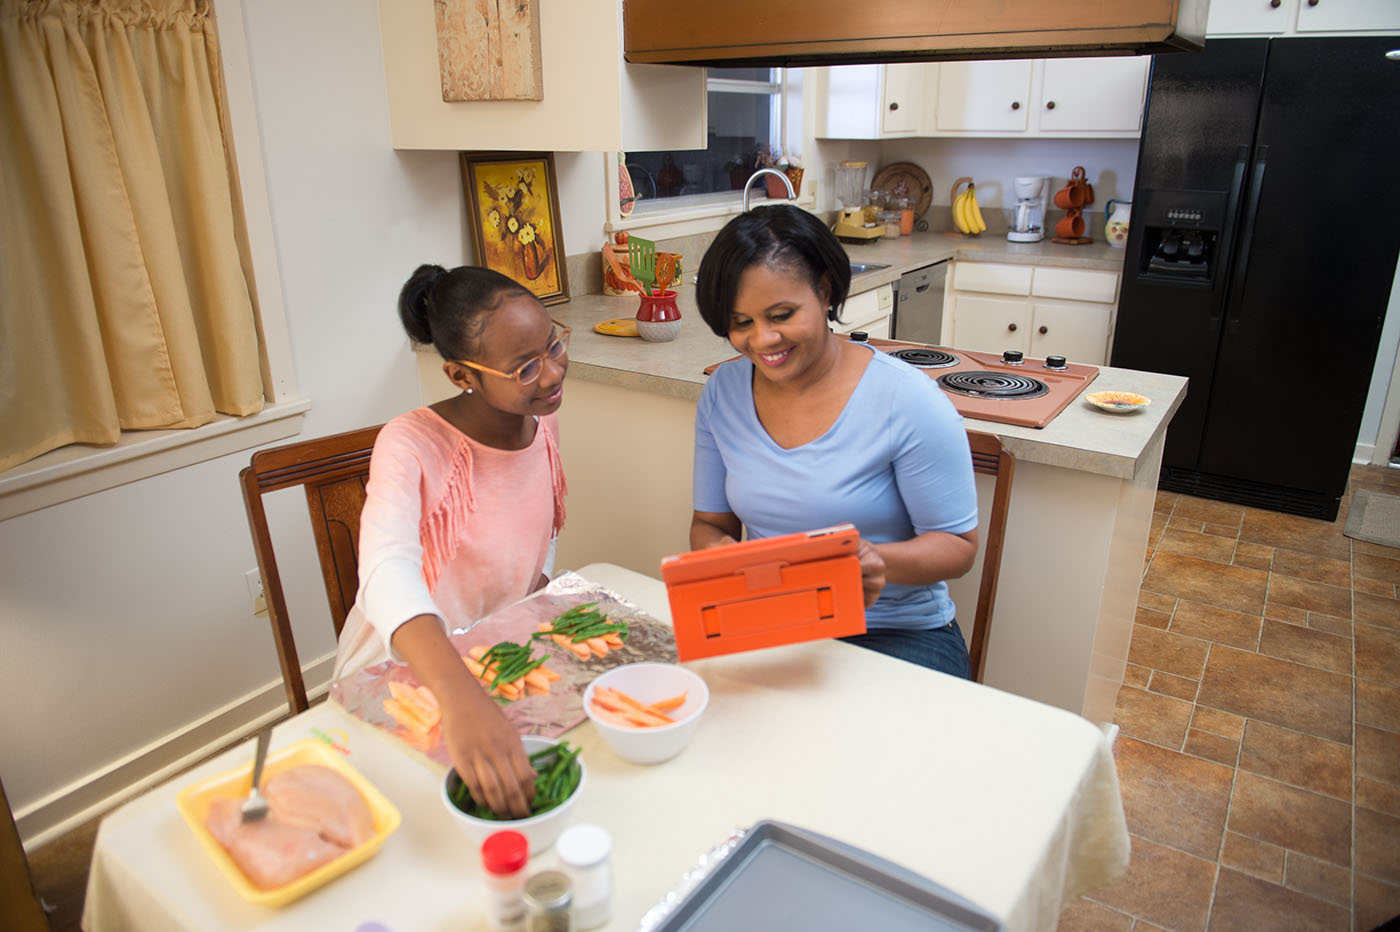 While looking at a tablet, a woman and girl prepare foil packs of chicken, green beans, and carrots.